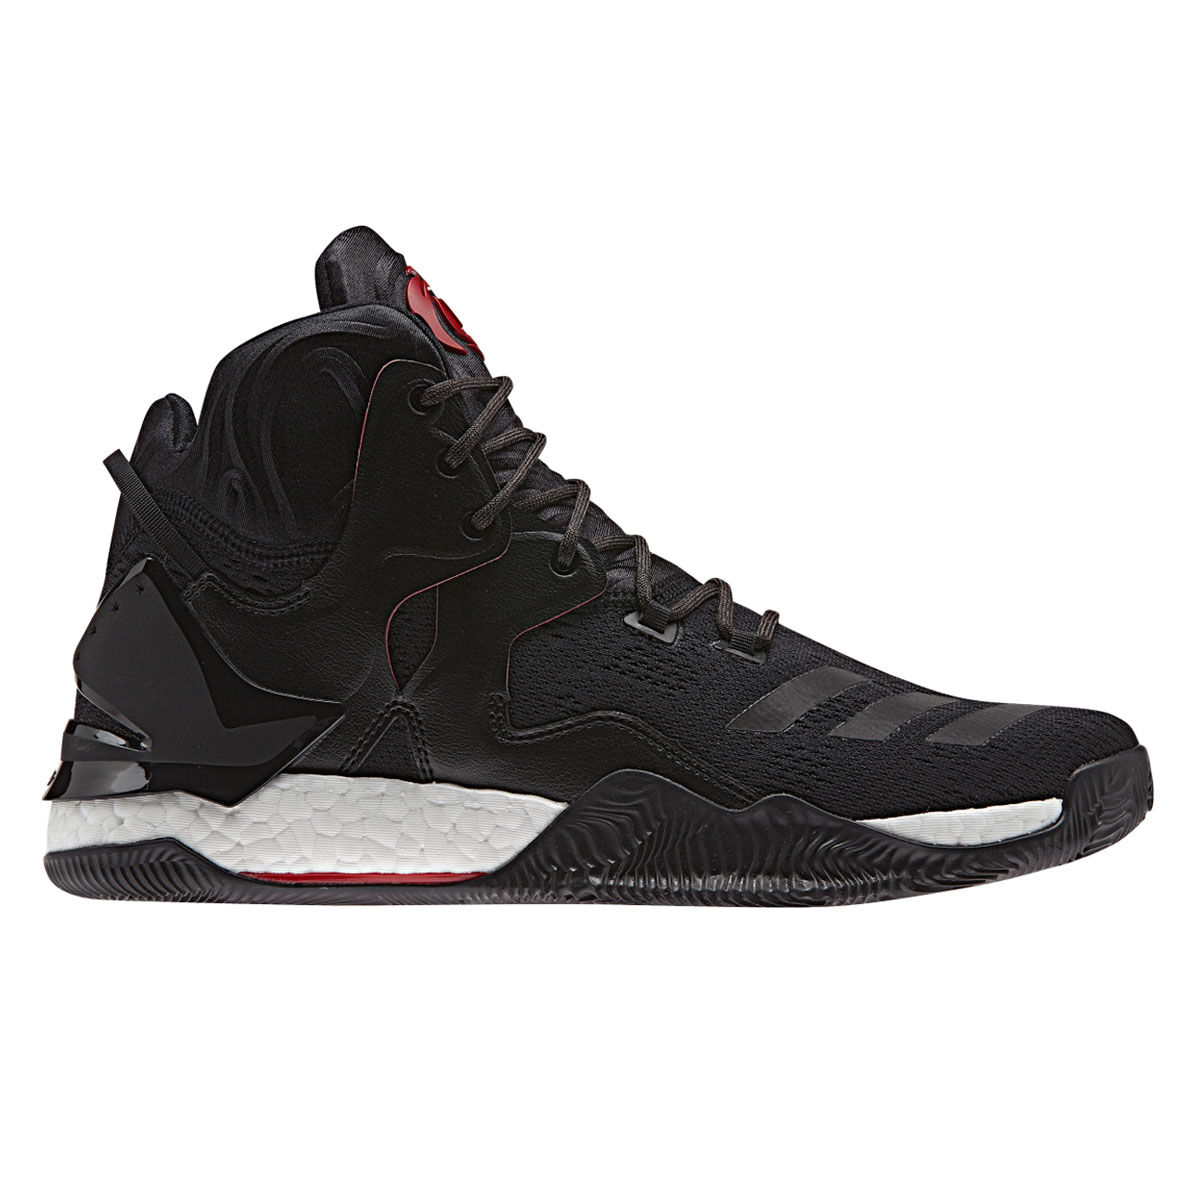 02bf0430b4b ... best price adidas d rose 7 primeknit mens basketball shoes black red us  9.5 black e5484